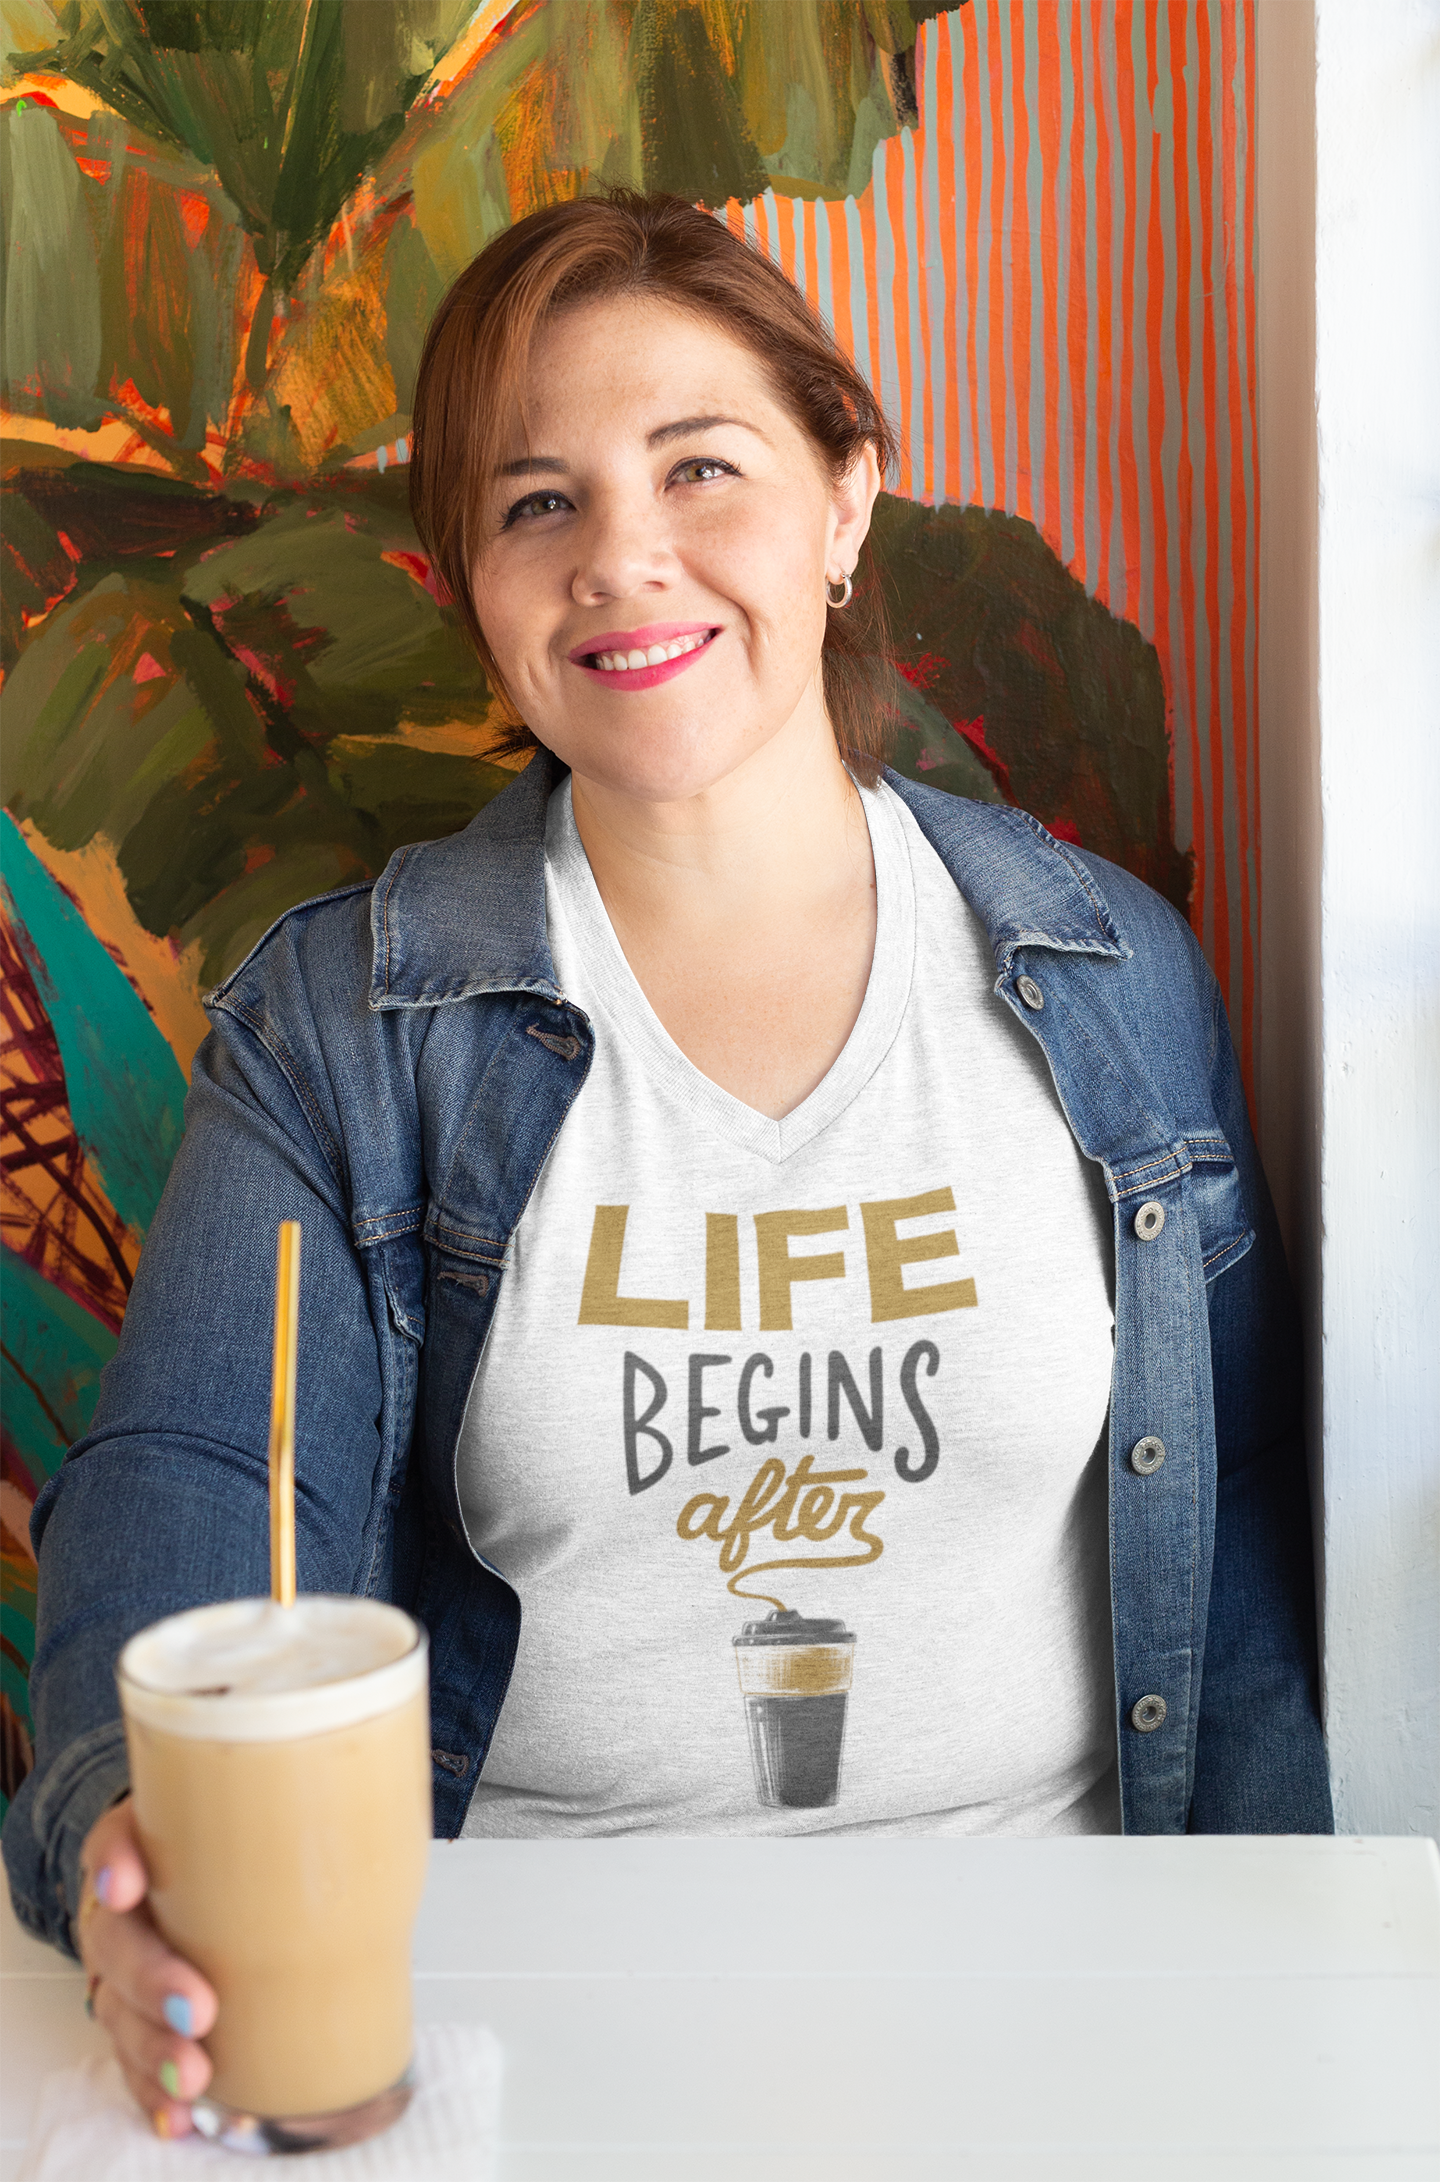 Life begins after coffee - V-Neck T-Shirts - GN - coffee, coffee lovers, funny t-shirts, funny sayings, funny quotes